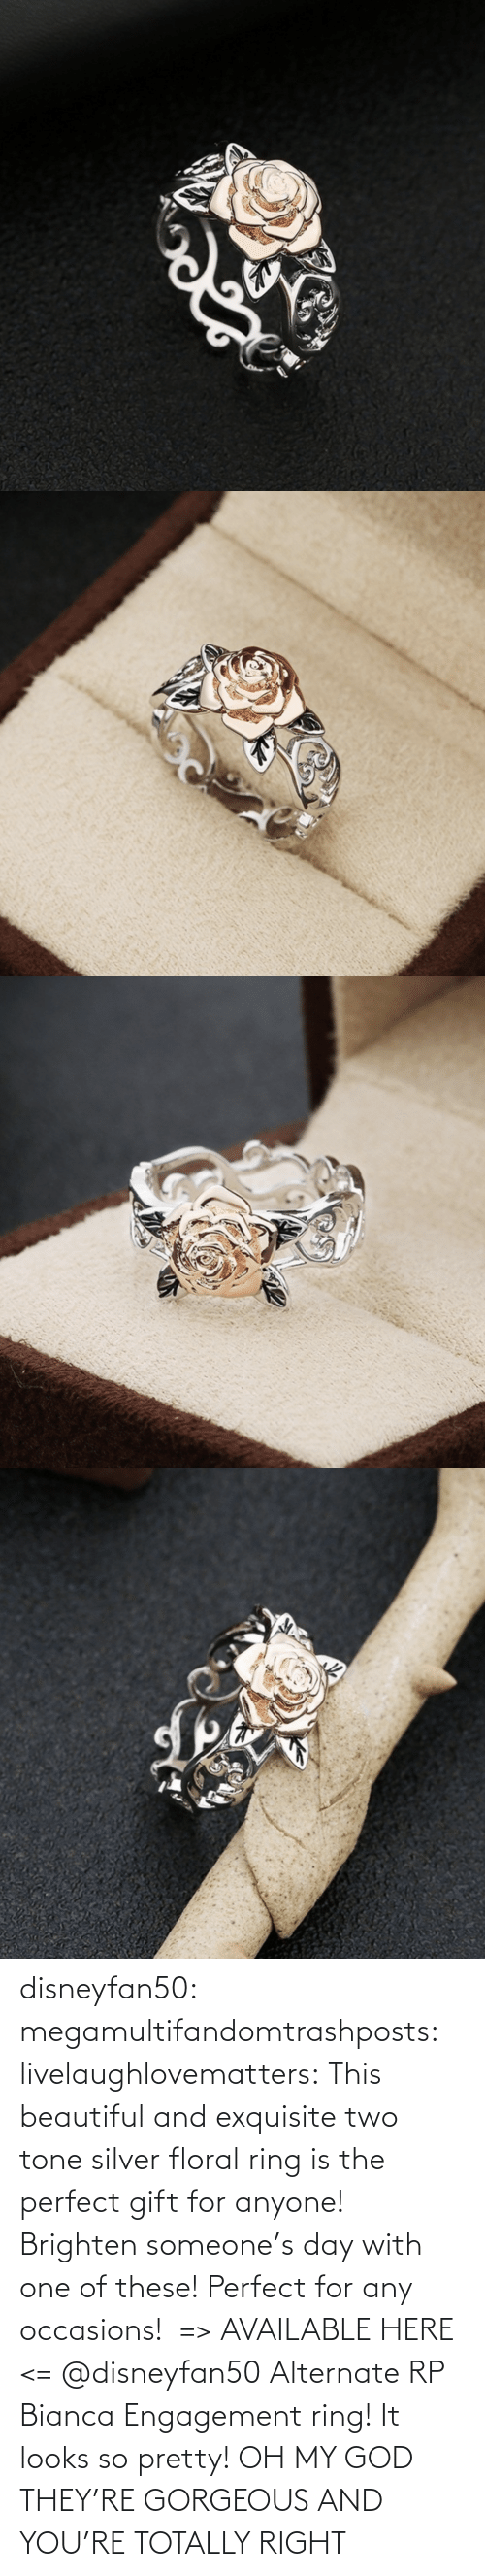 Gorgeous: disneyfan50: megamultifandomtrashposts:  livelaughlovematters:  This beautiful and exquisite two tone silver floral ring is the perfect gift for anyone! Brighten someone's day with one of these! Perfect for any occasions!  => AVAILABLE HERE <=    @disneyfan50 Alternate RP Bianca Engagement ring! It looks so pretty!  OH MY GOD THEY'RE GORGEOUS AND YOU'RE TOTALLY RIGHT